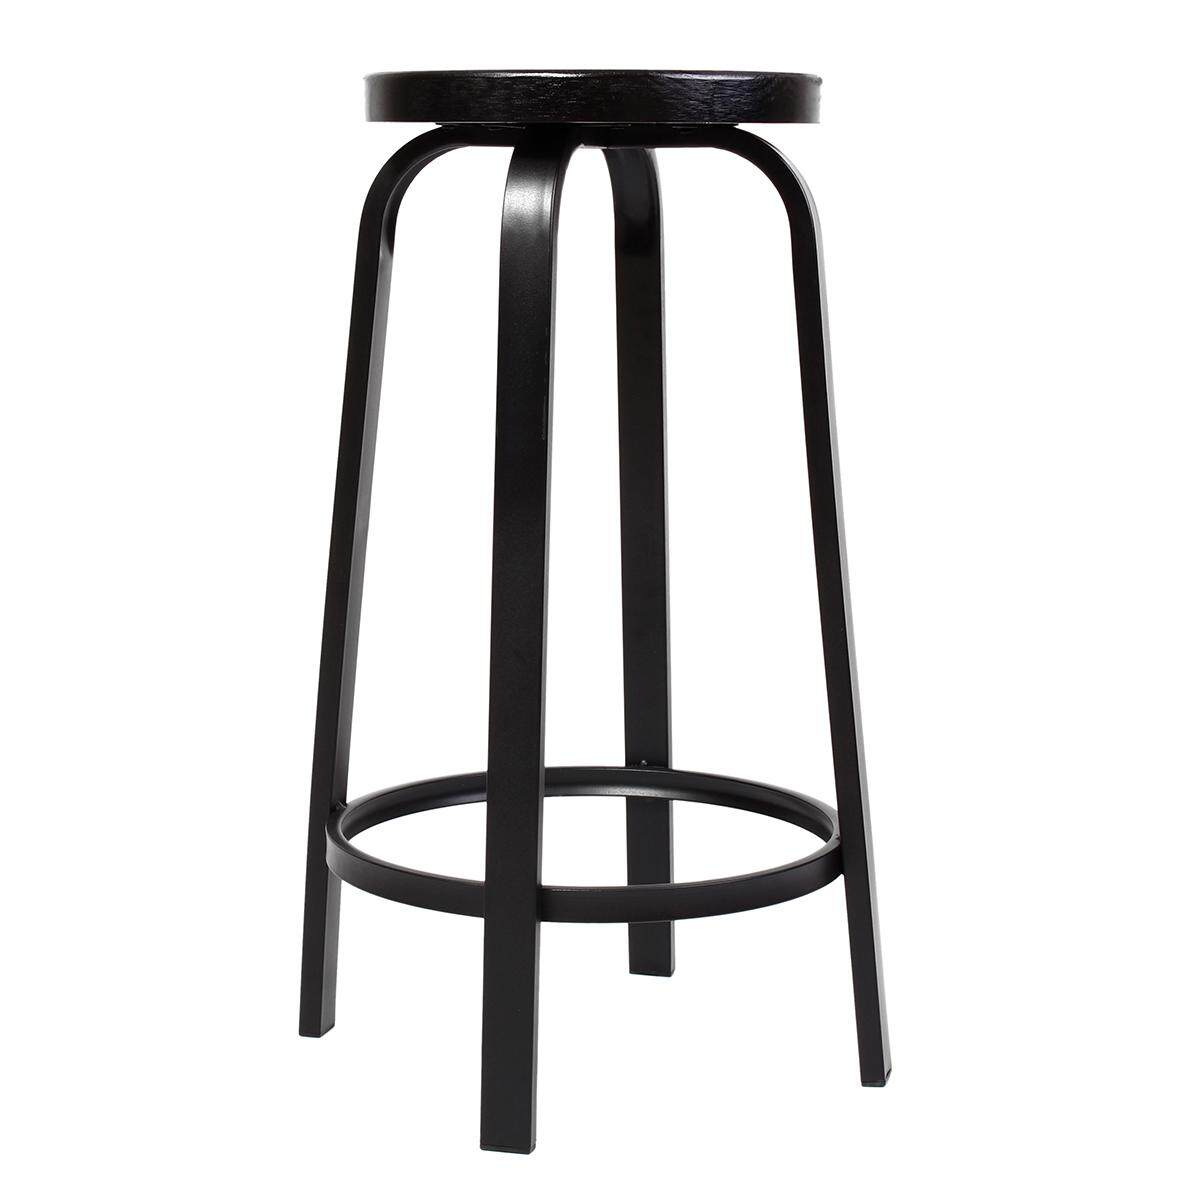 Industrial Retro Urban Metal Bar Stool Cafe Factory Chair Furniture # 60cm